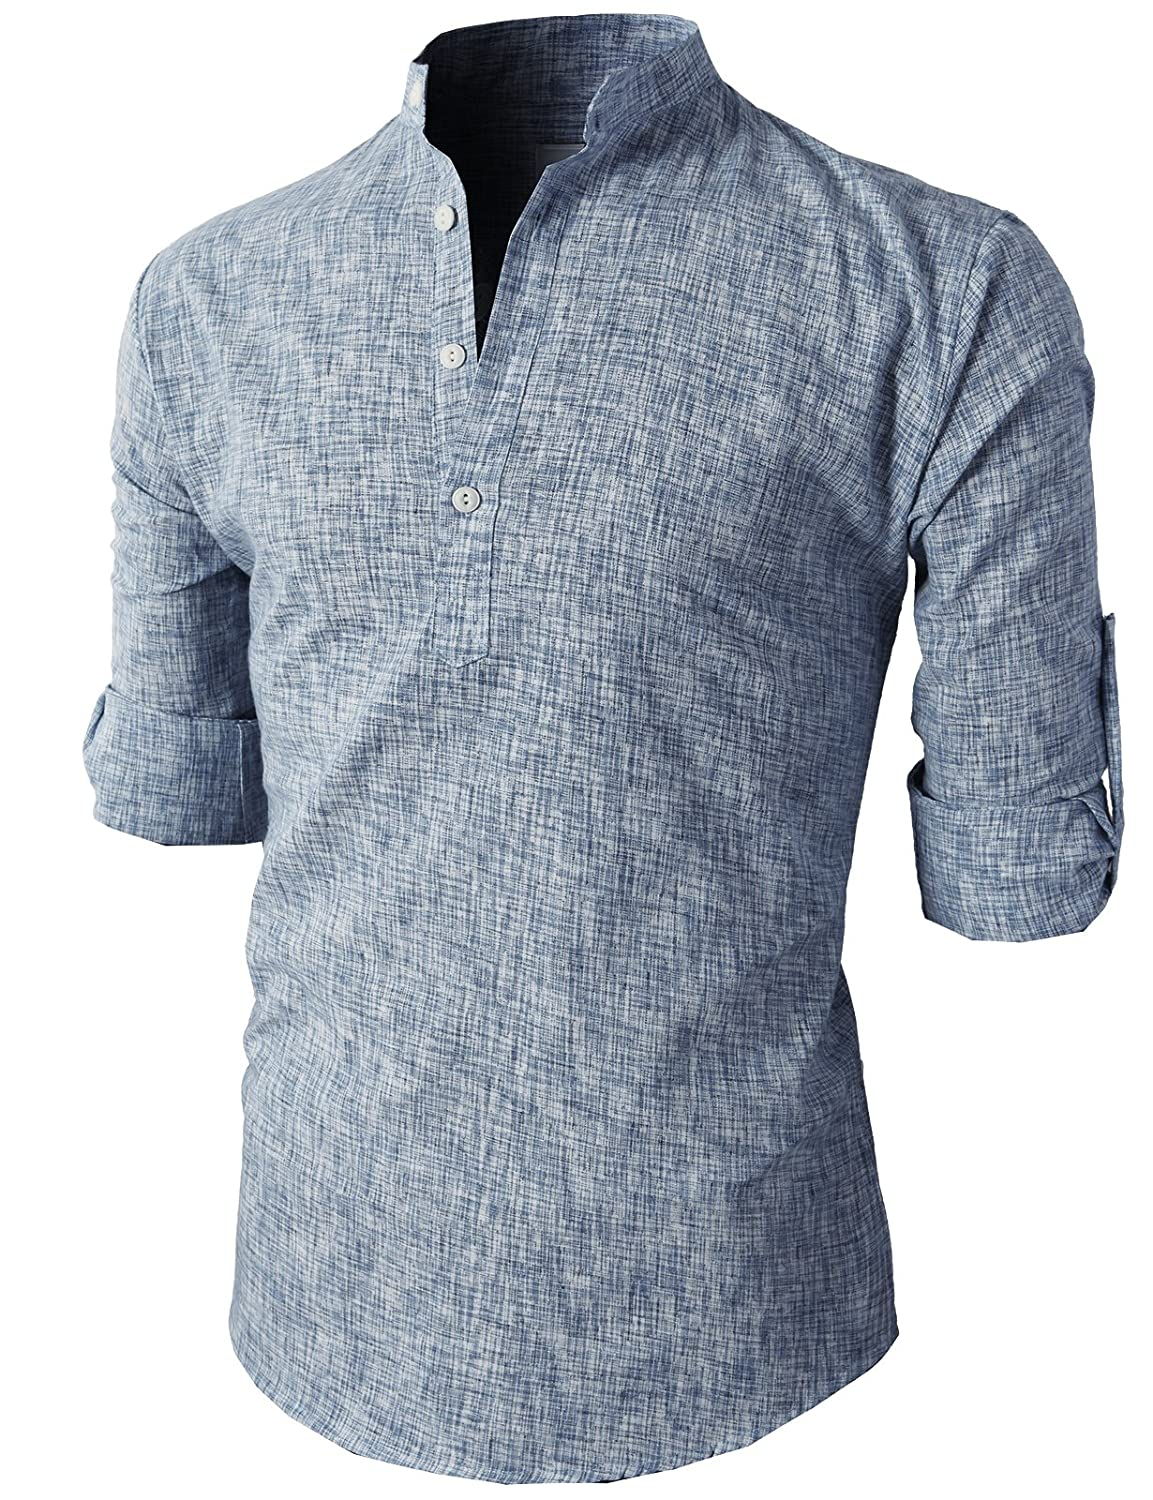 669d2fa8 H2H Mens Casual Slim Fit Shirts Henley Linen Shirts Roll up Long Sleeve at  Amazon Men's Clothing store: